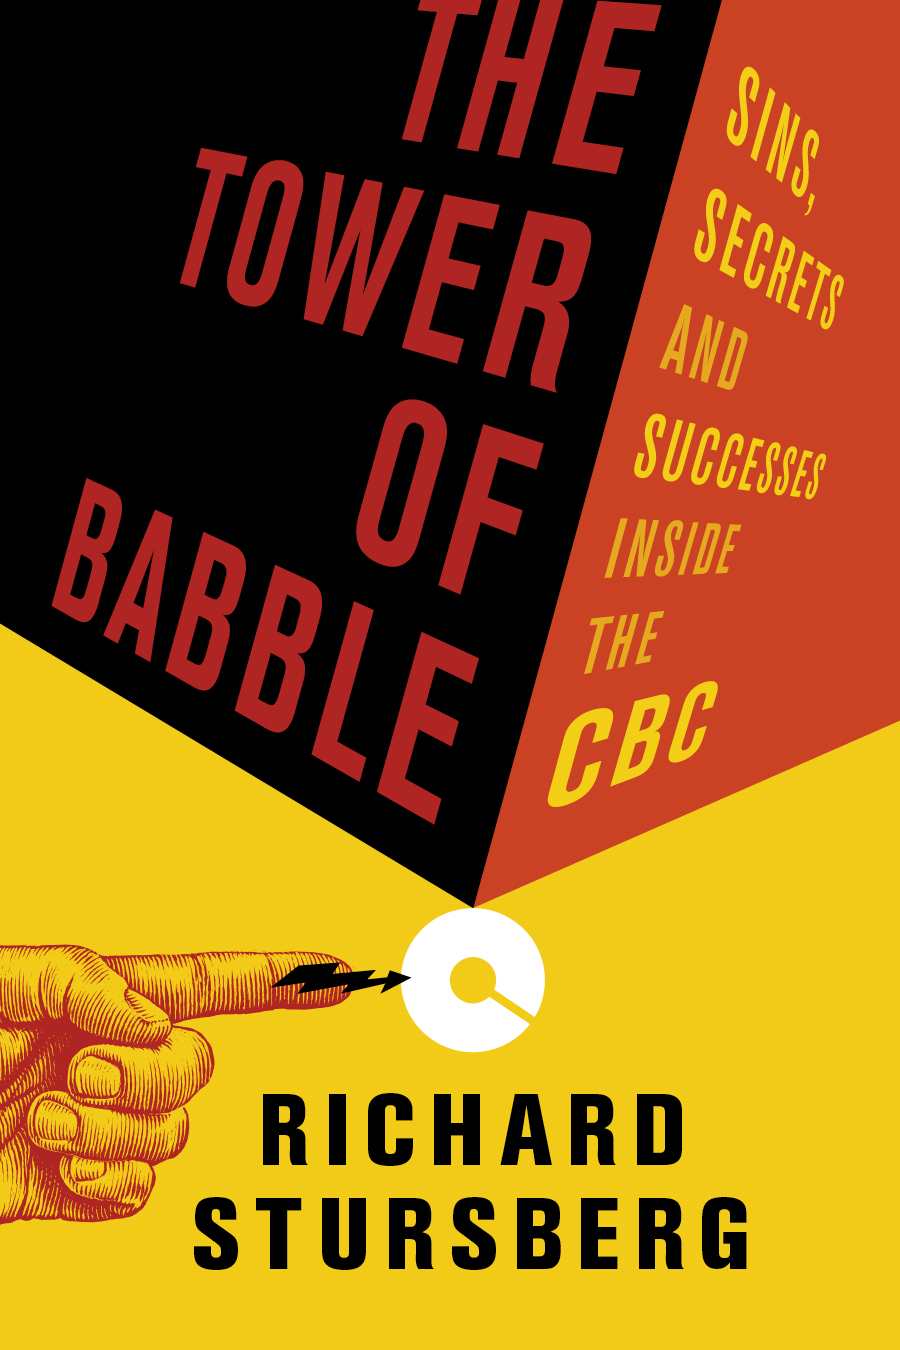 Tower of Babble, The: Sins, Secrets and Successes Inside the CBC